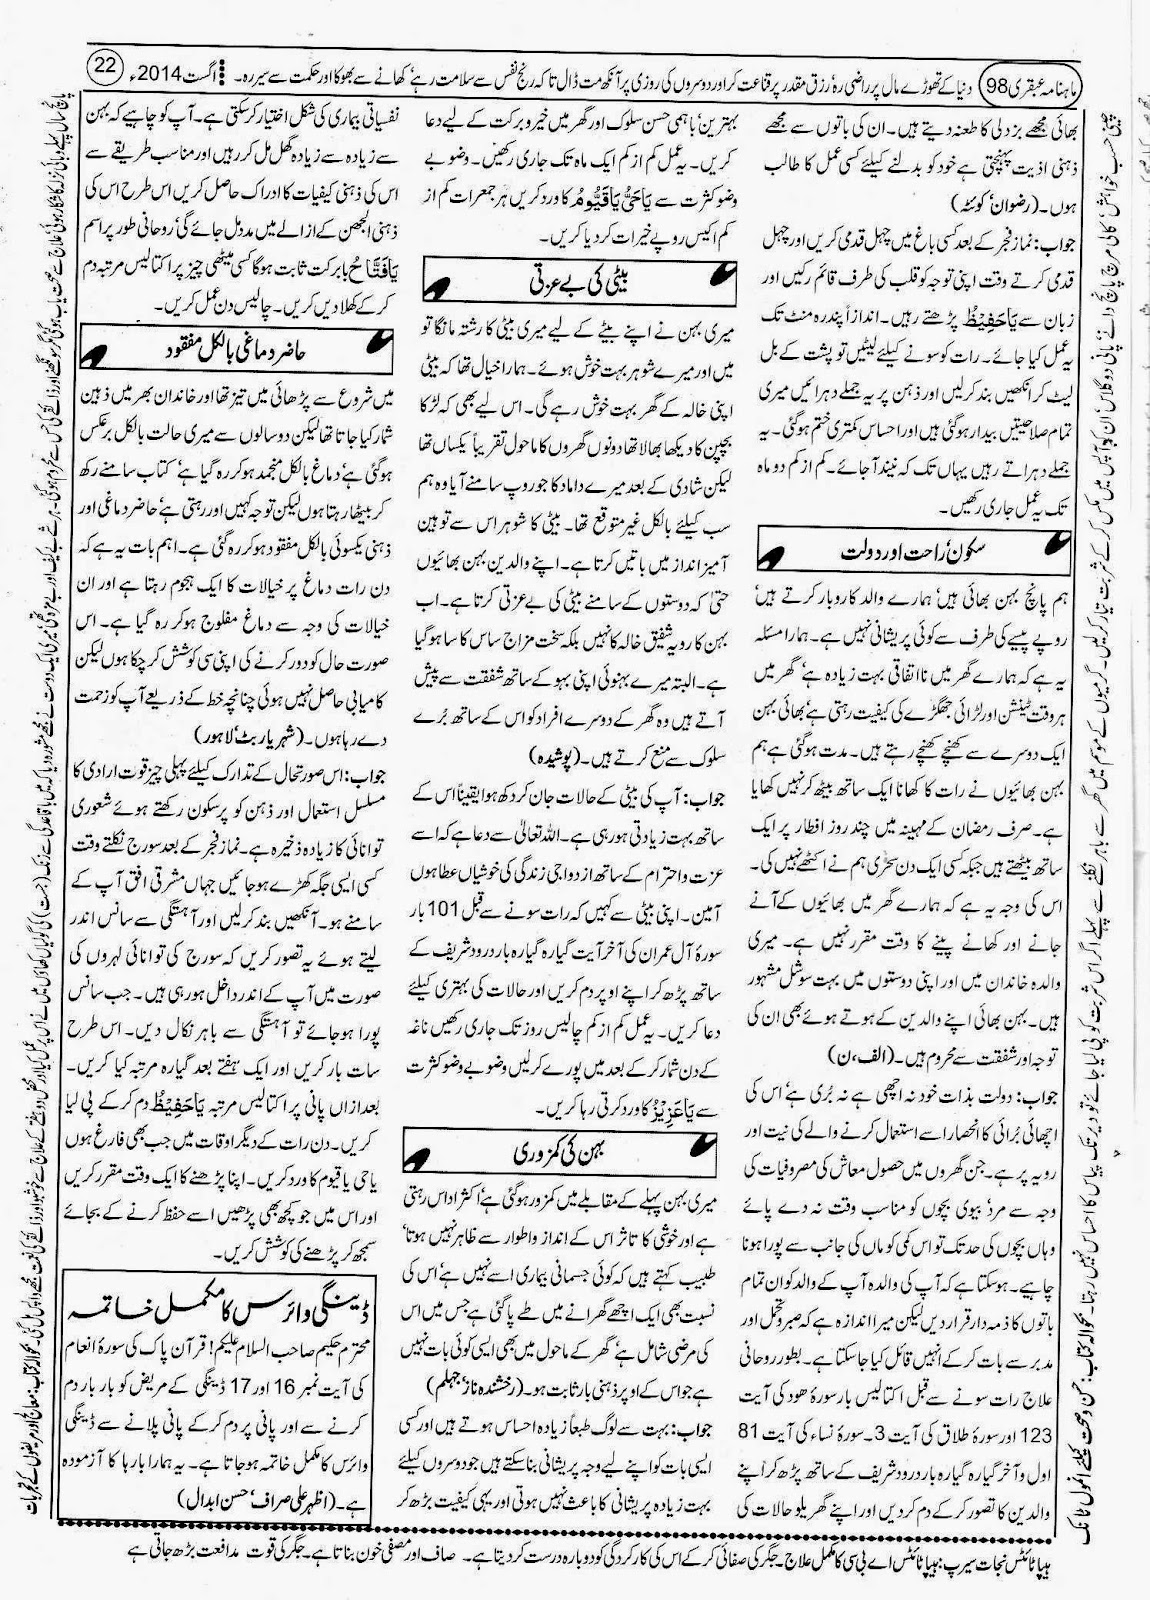 Ubqari August 2014 Page 22